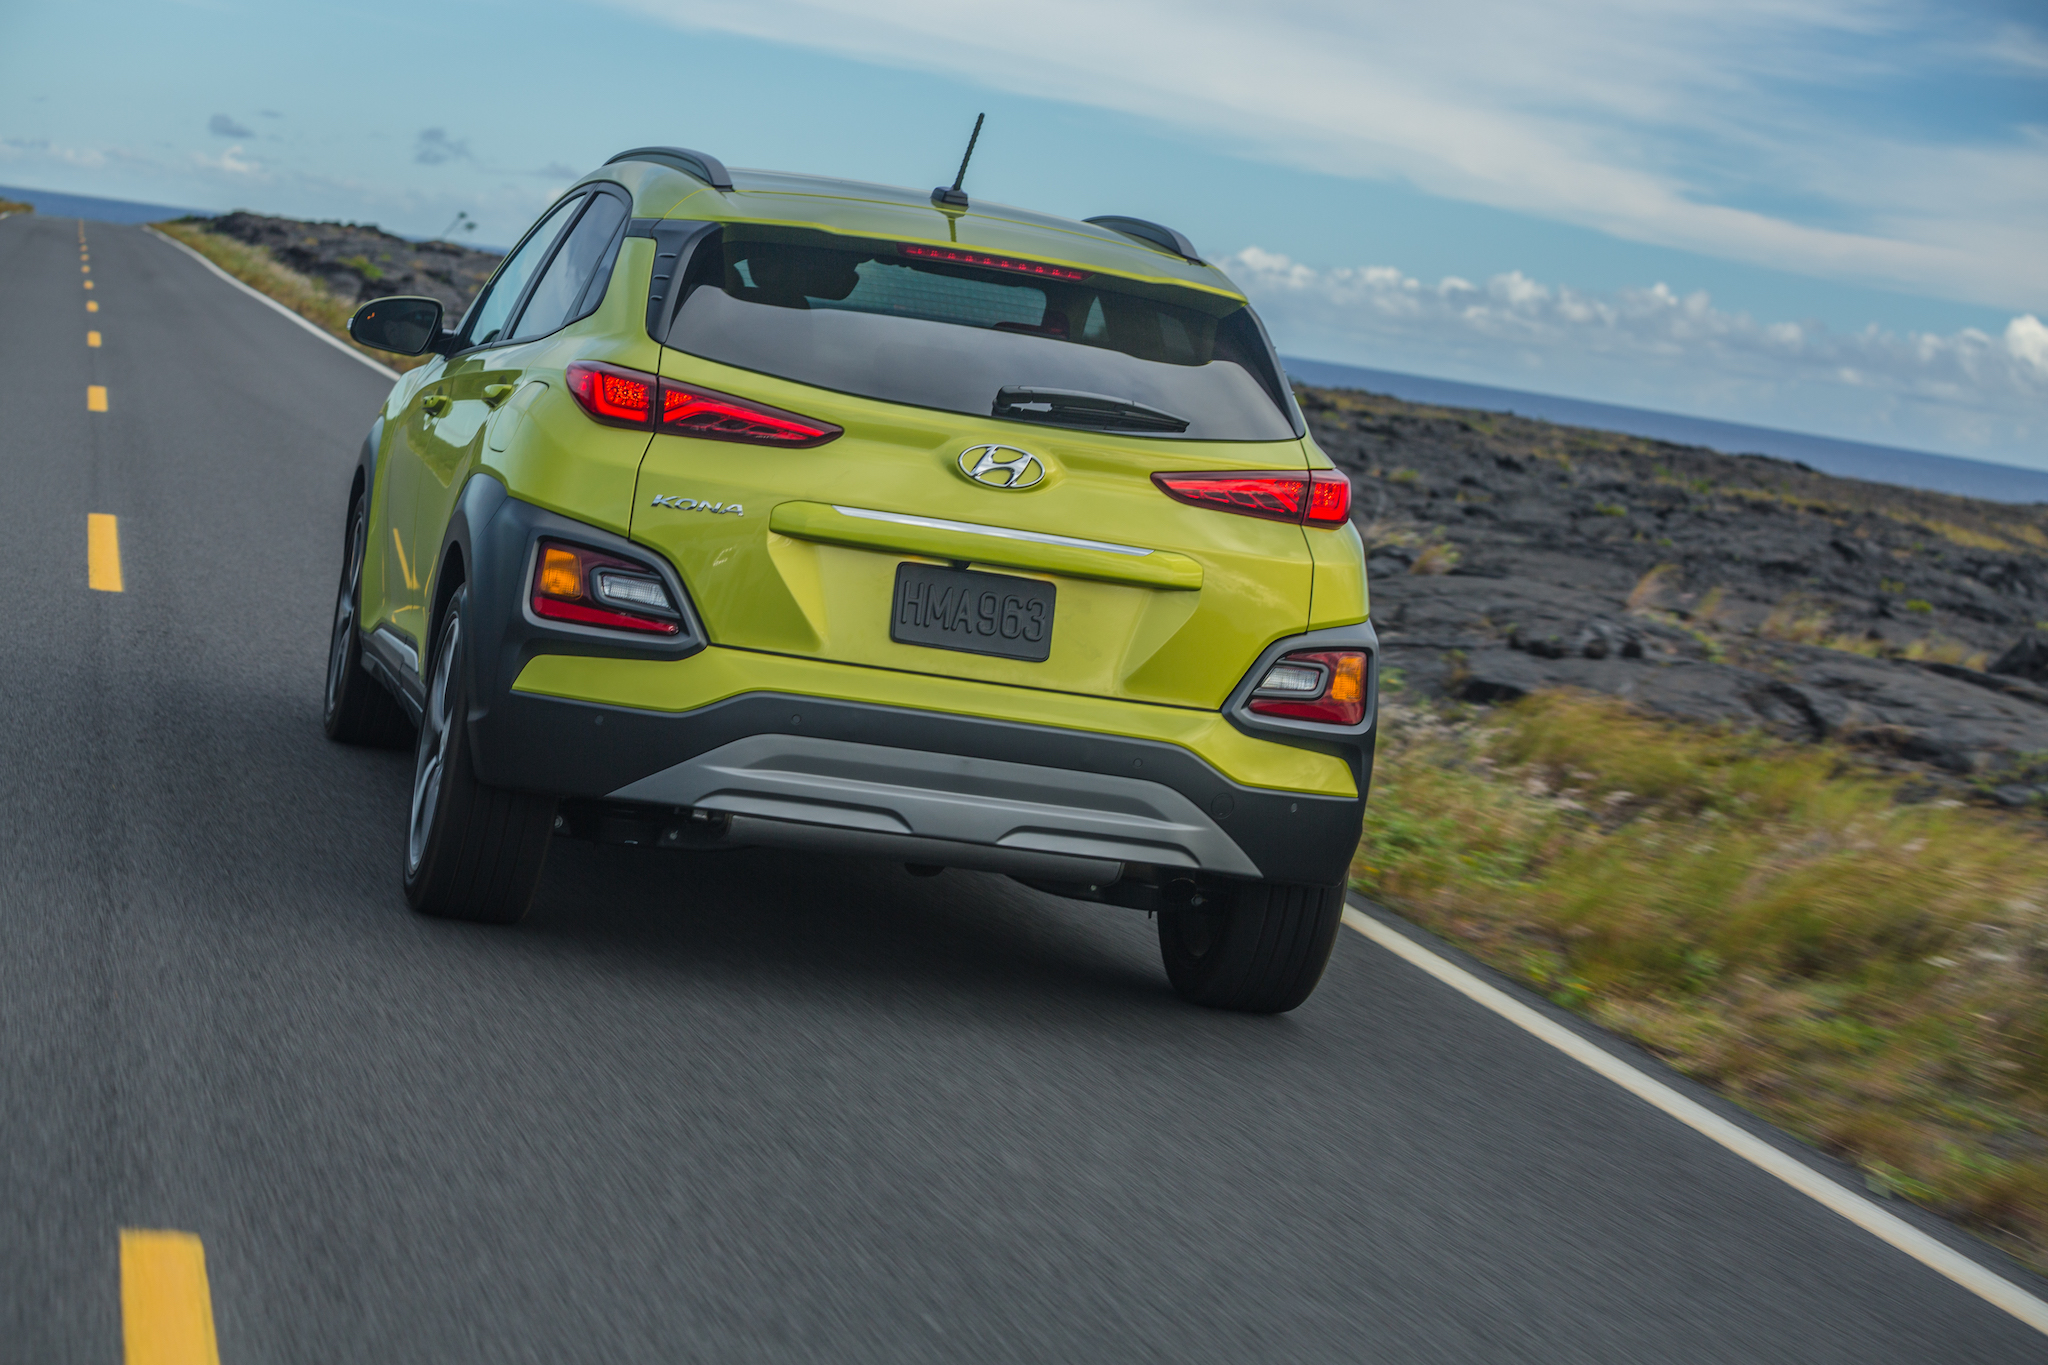 The Hyundai Kona: A well-equipped crossover starting at just